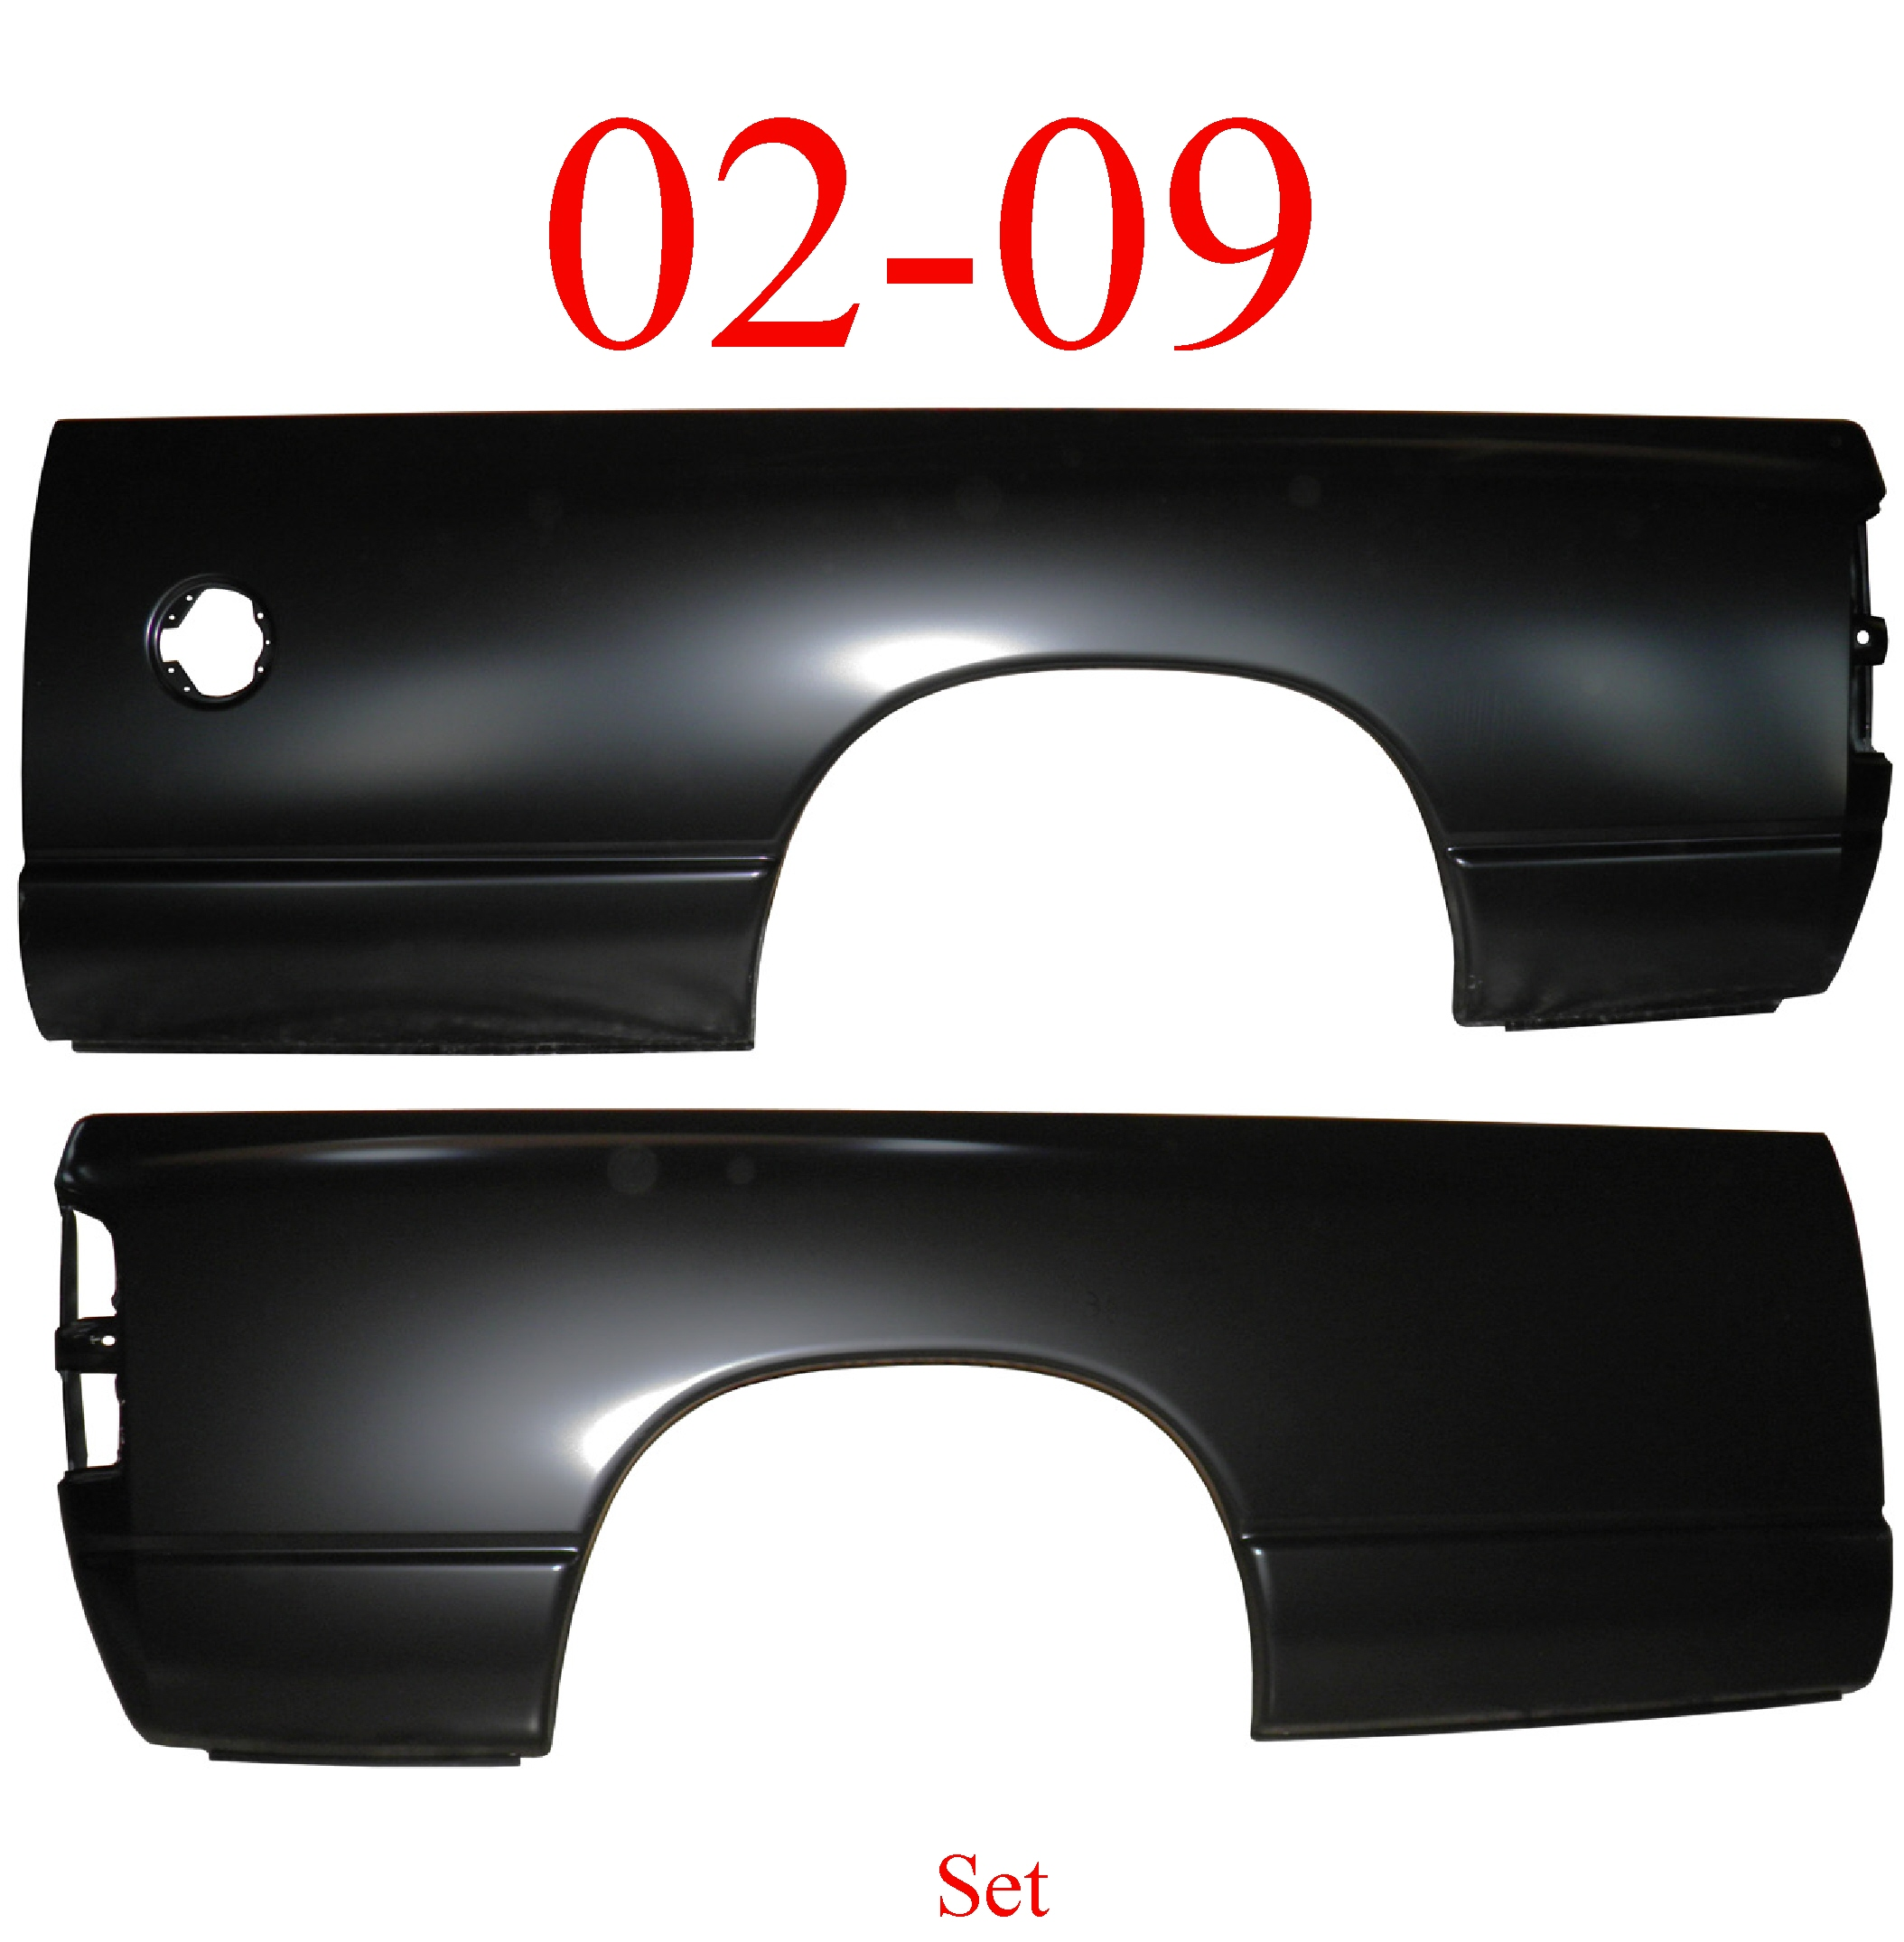 02-09 Dodge Ram 8' Long Bed Side Set, Both Sides